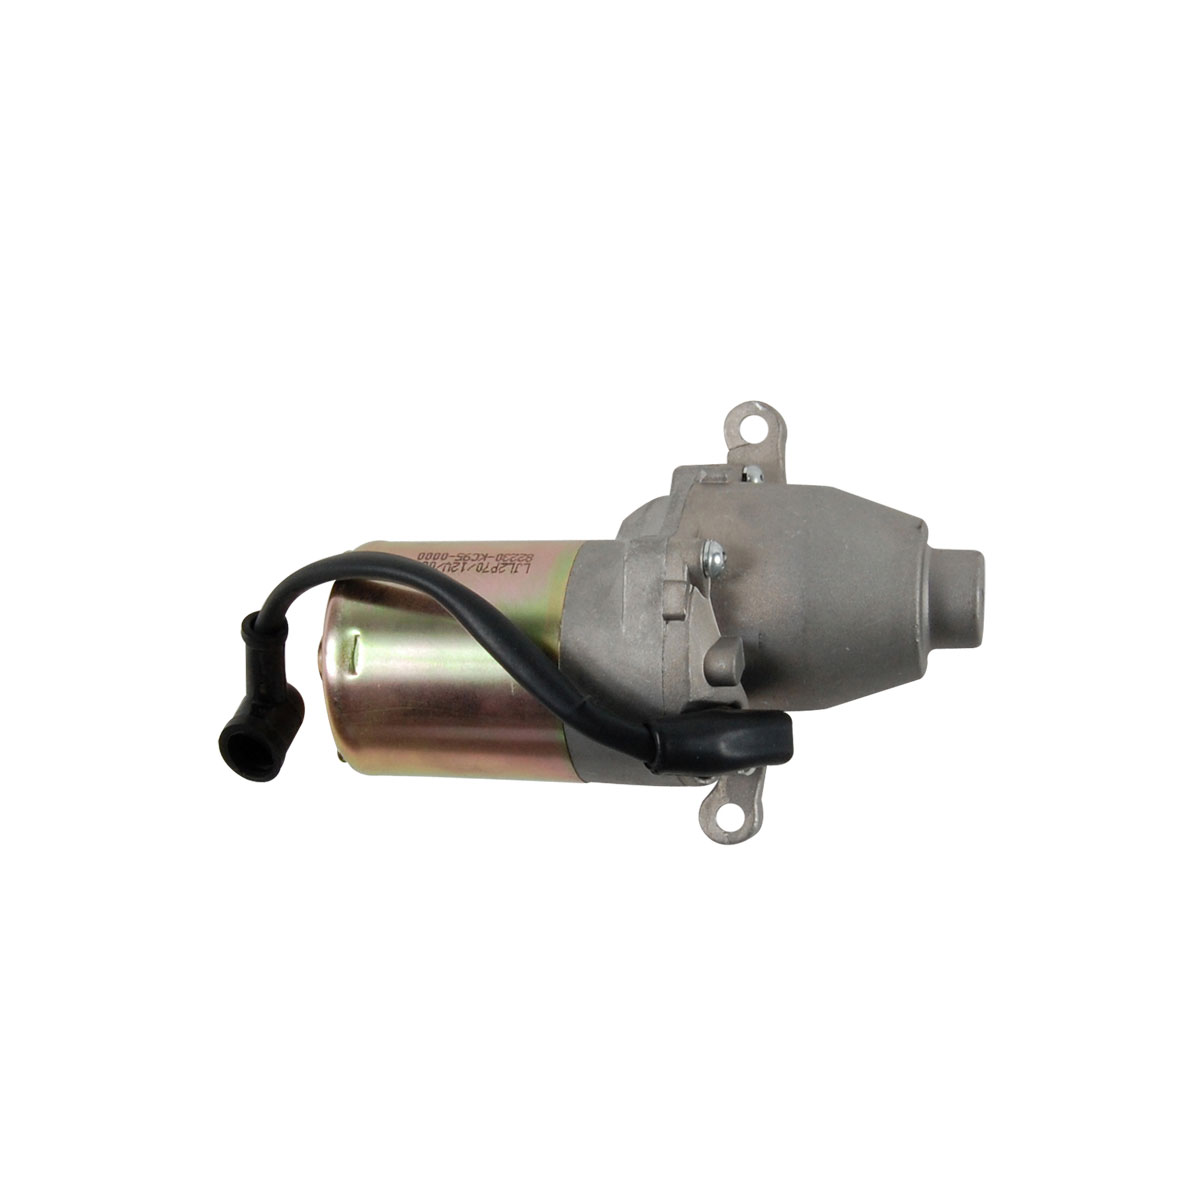 electrical starter 951-10822